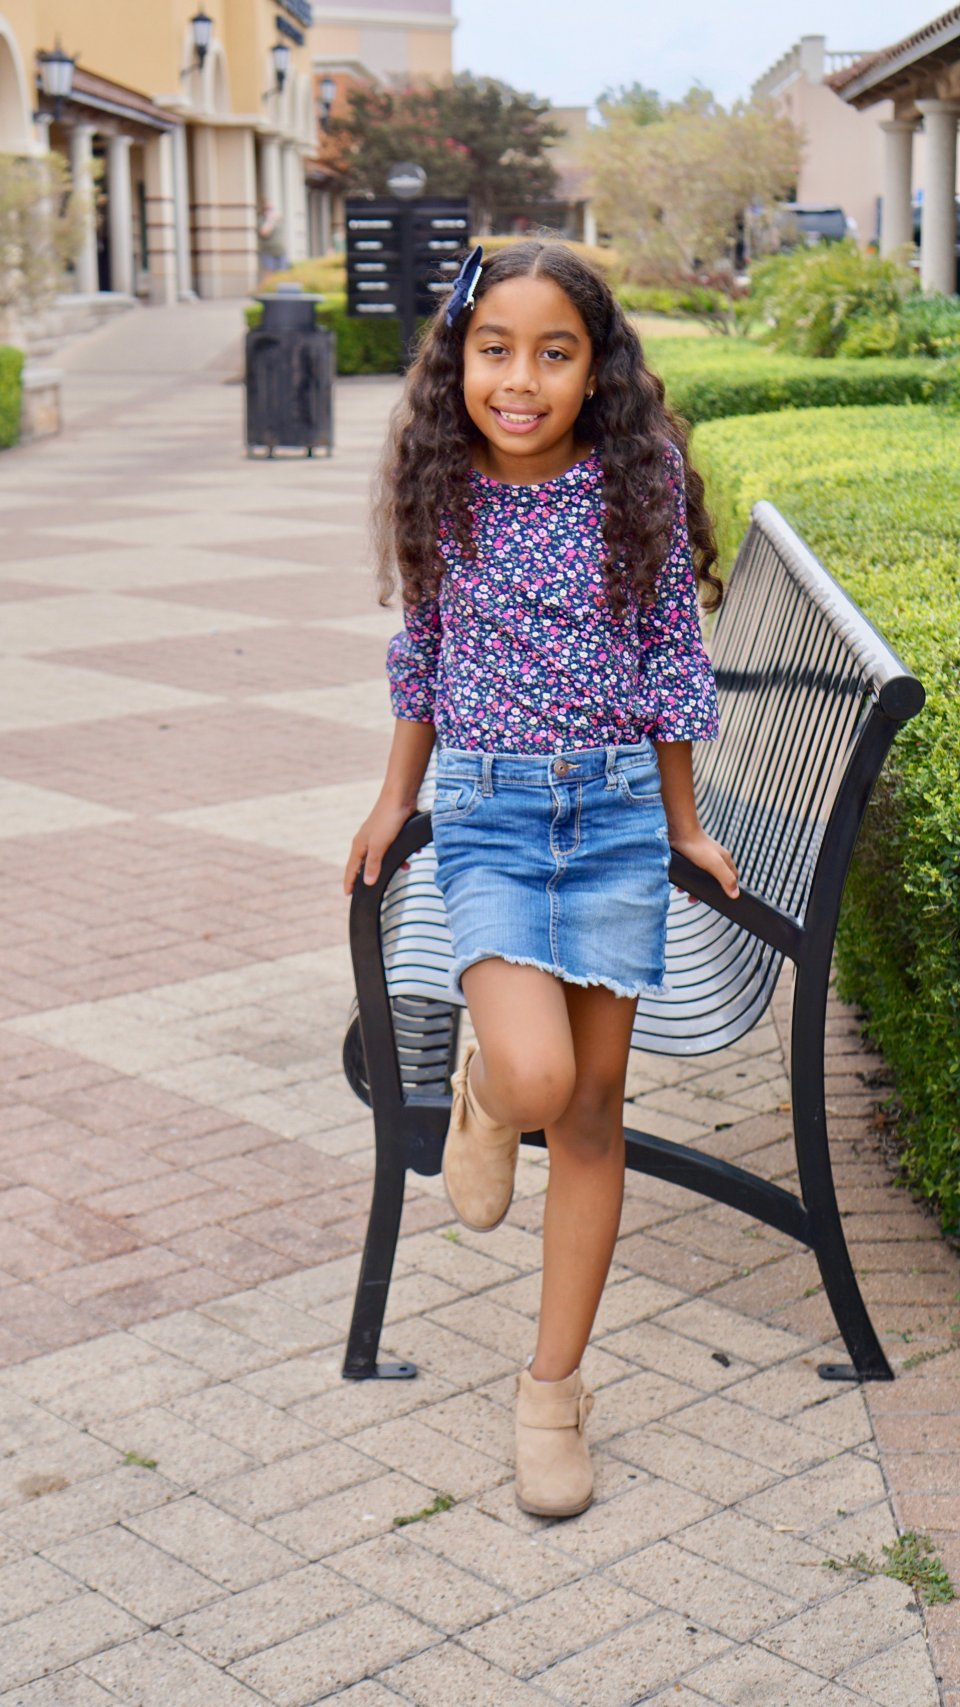 Four Back to School Tips for Shopping OshKosh B'gosh + a Giveaway